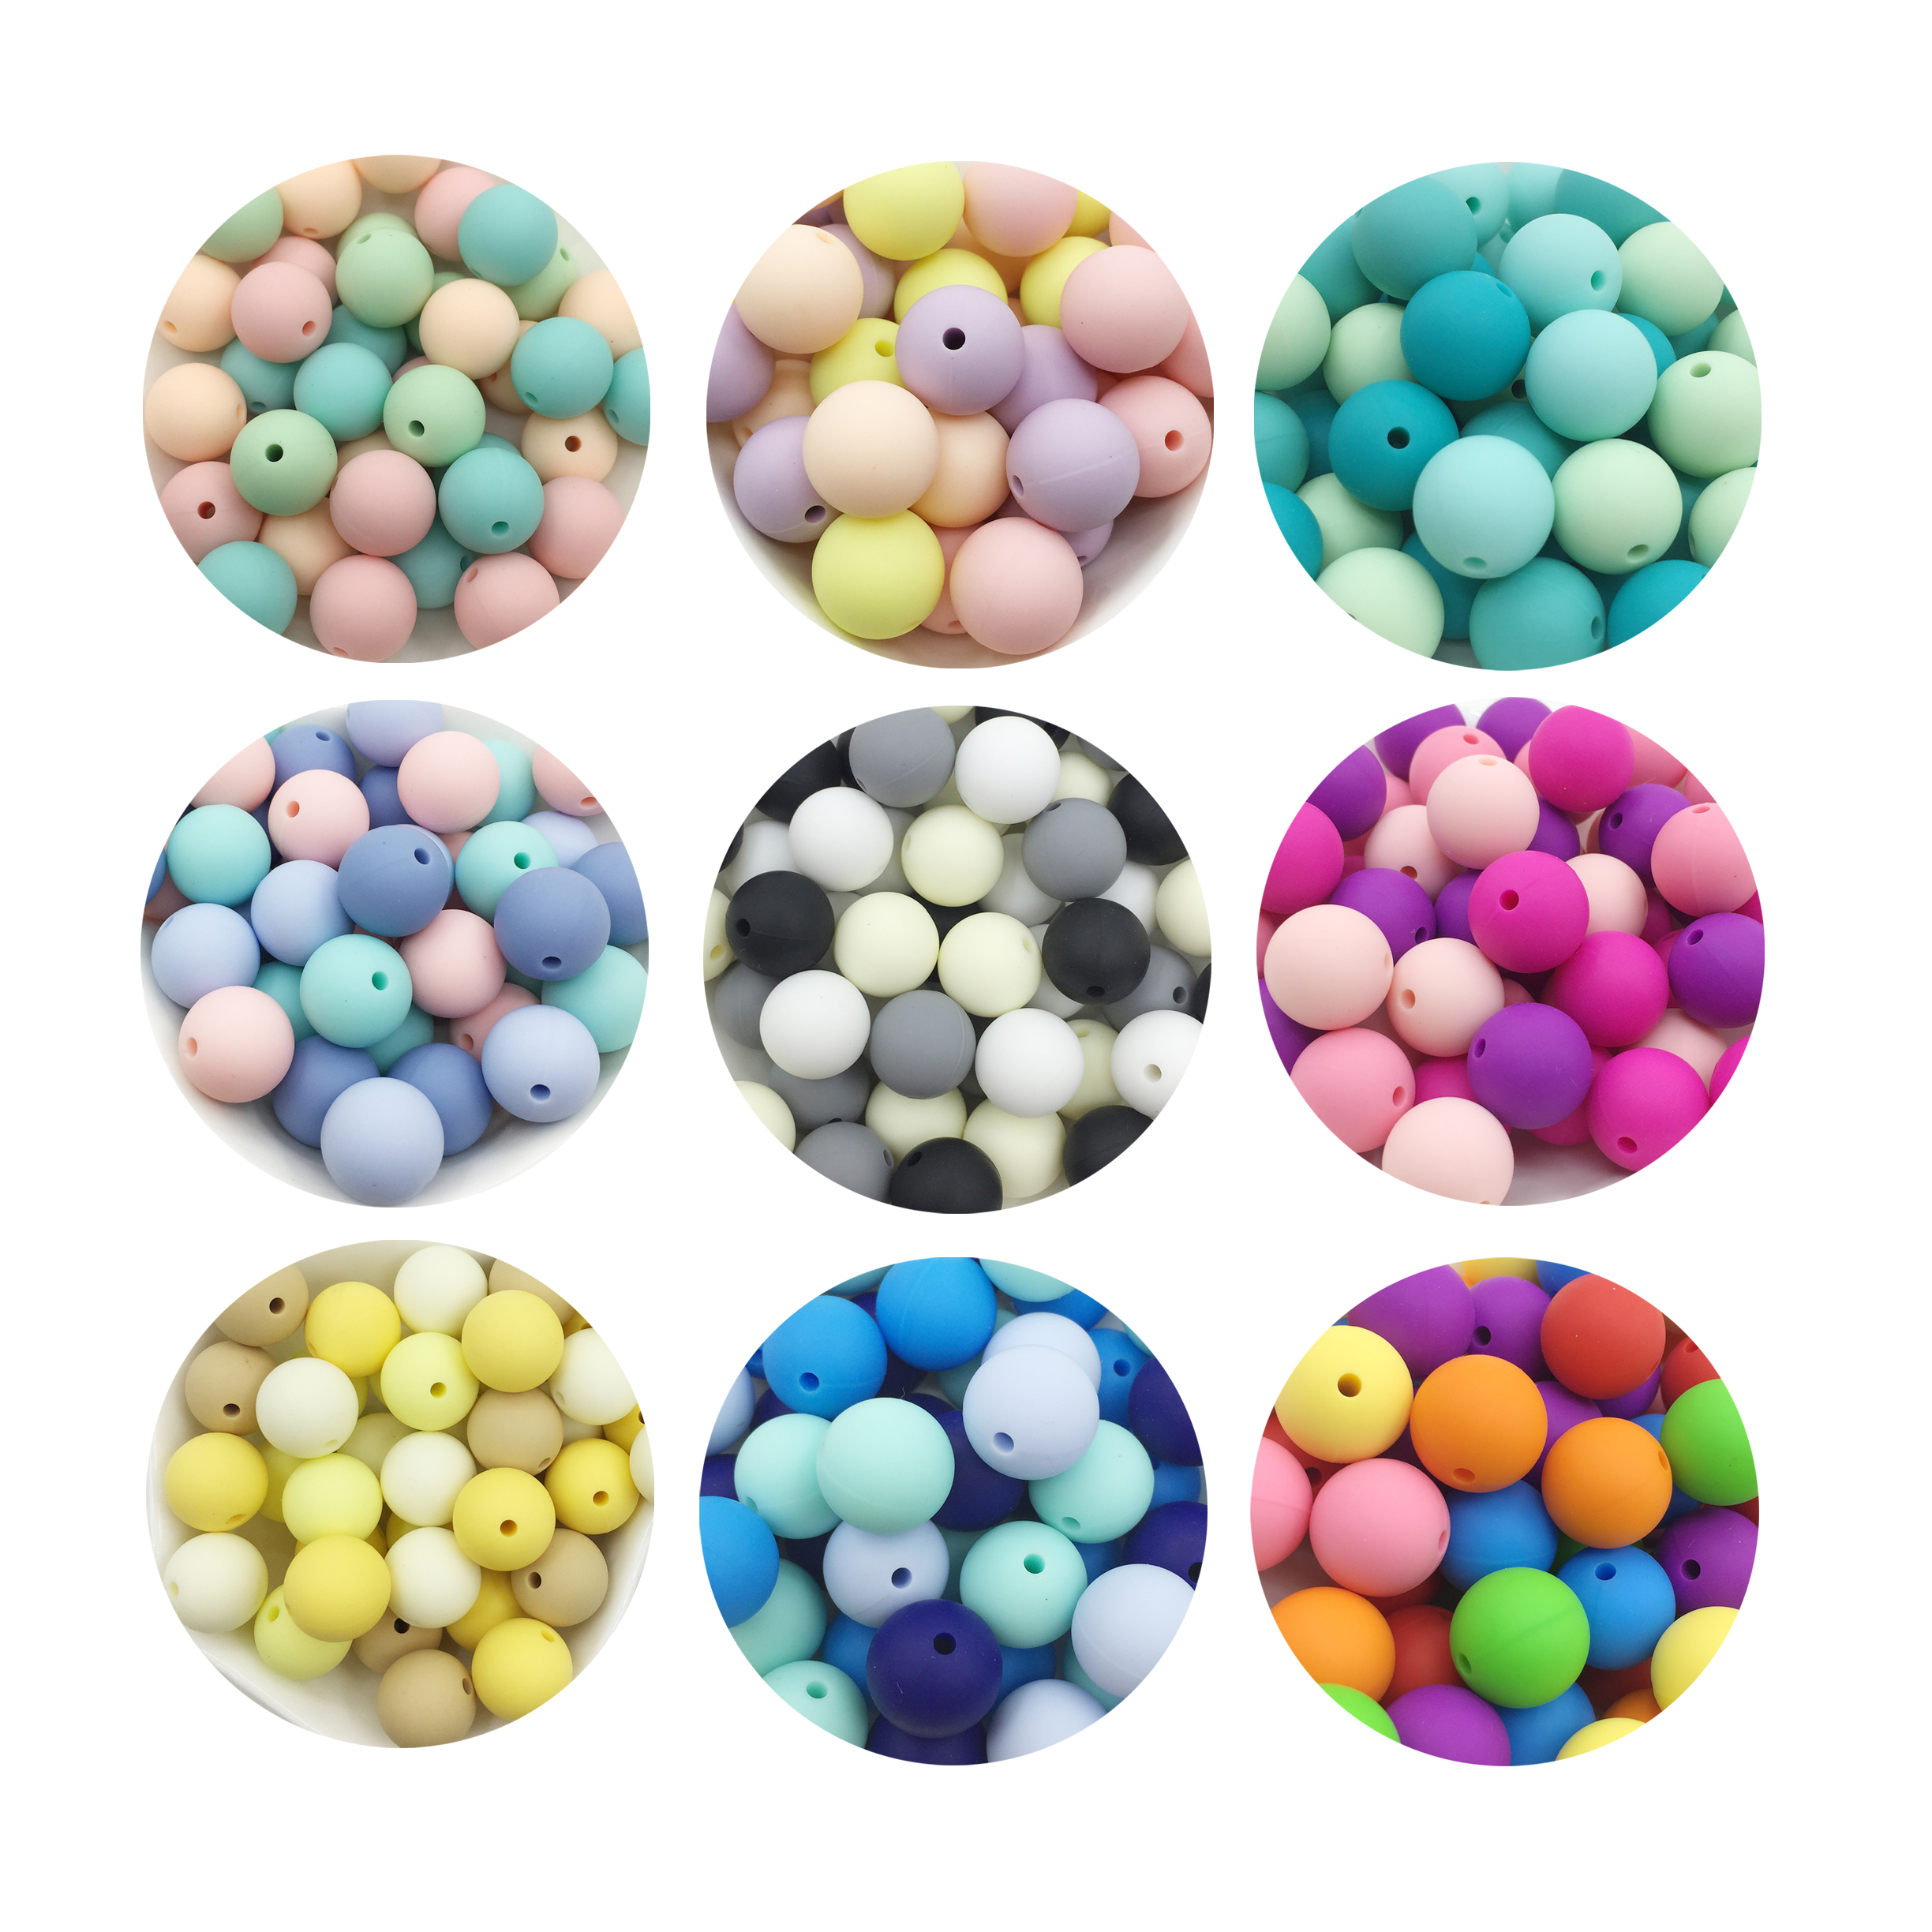 15MM Silicone Beads Teether Aqua Color 100PC Round Silicone Beads 15mm BPA Free Set Silicone Teething Beads Teether(China)